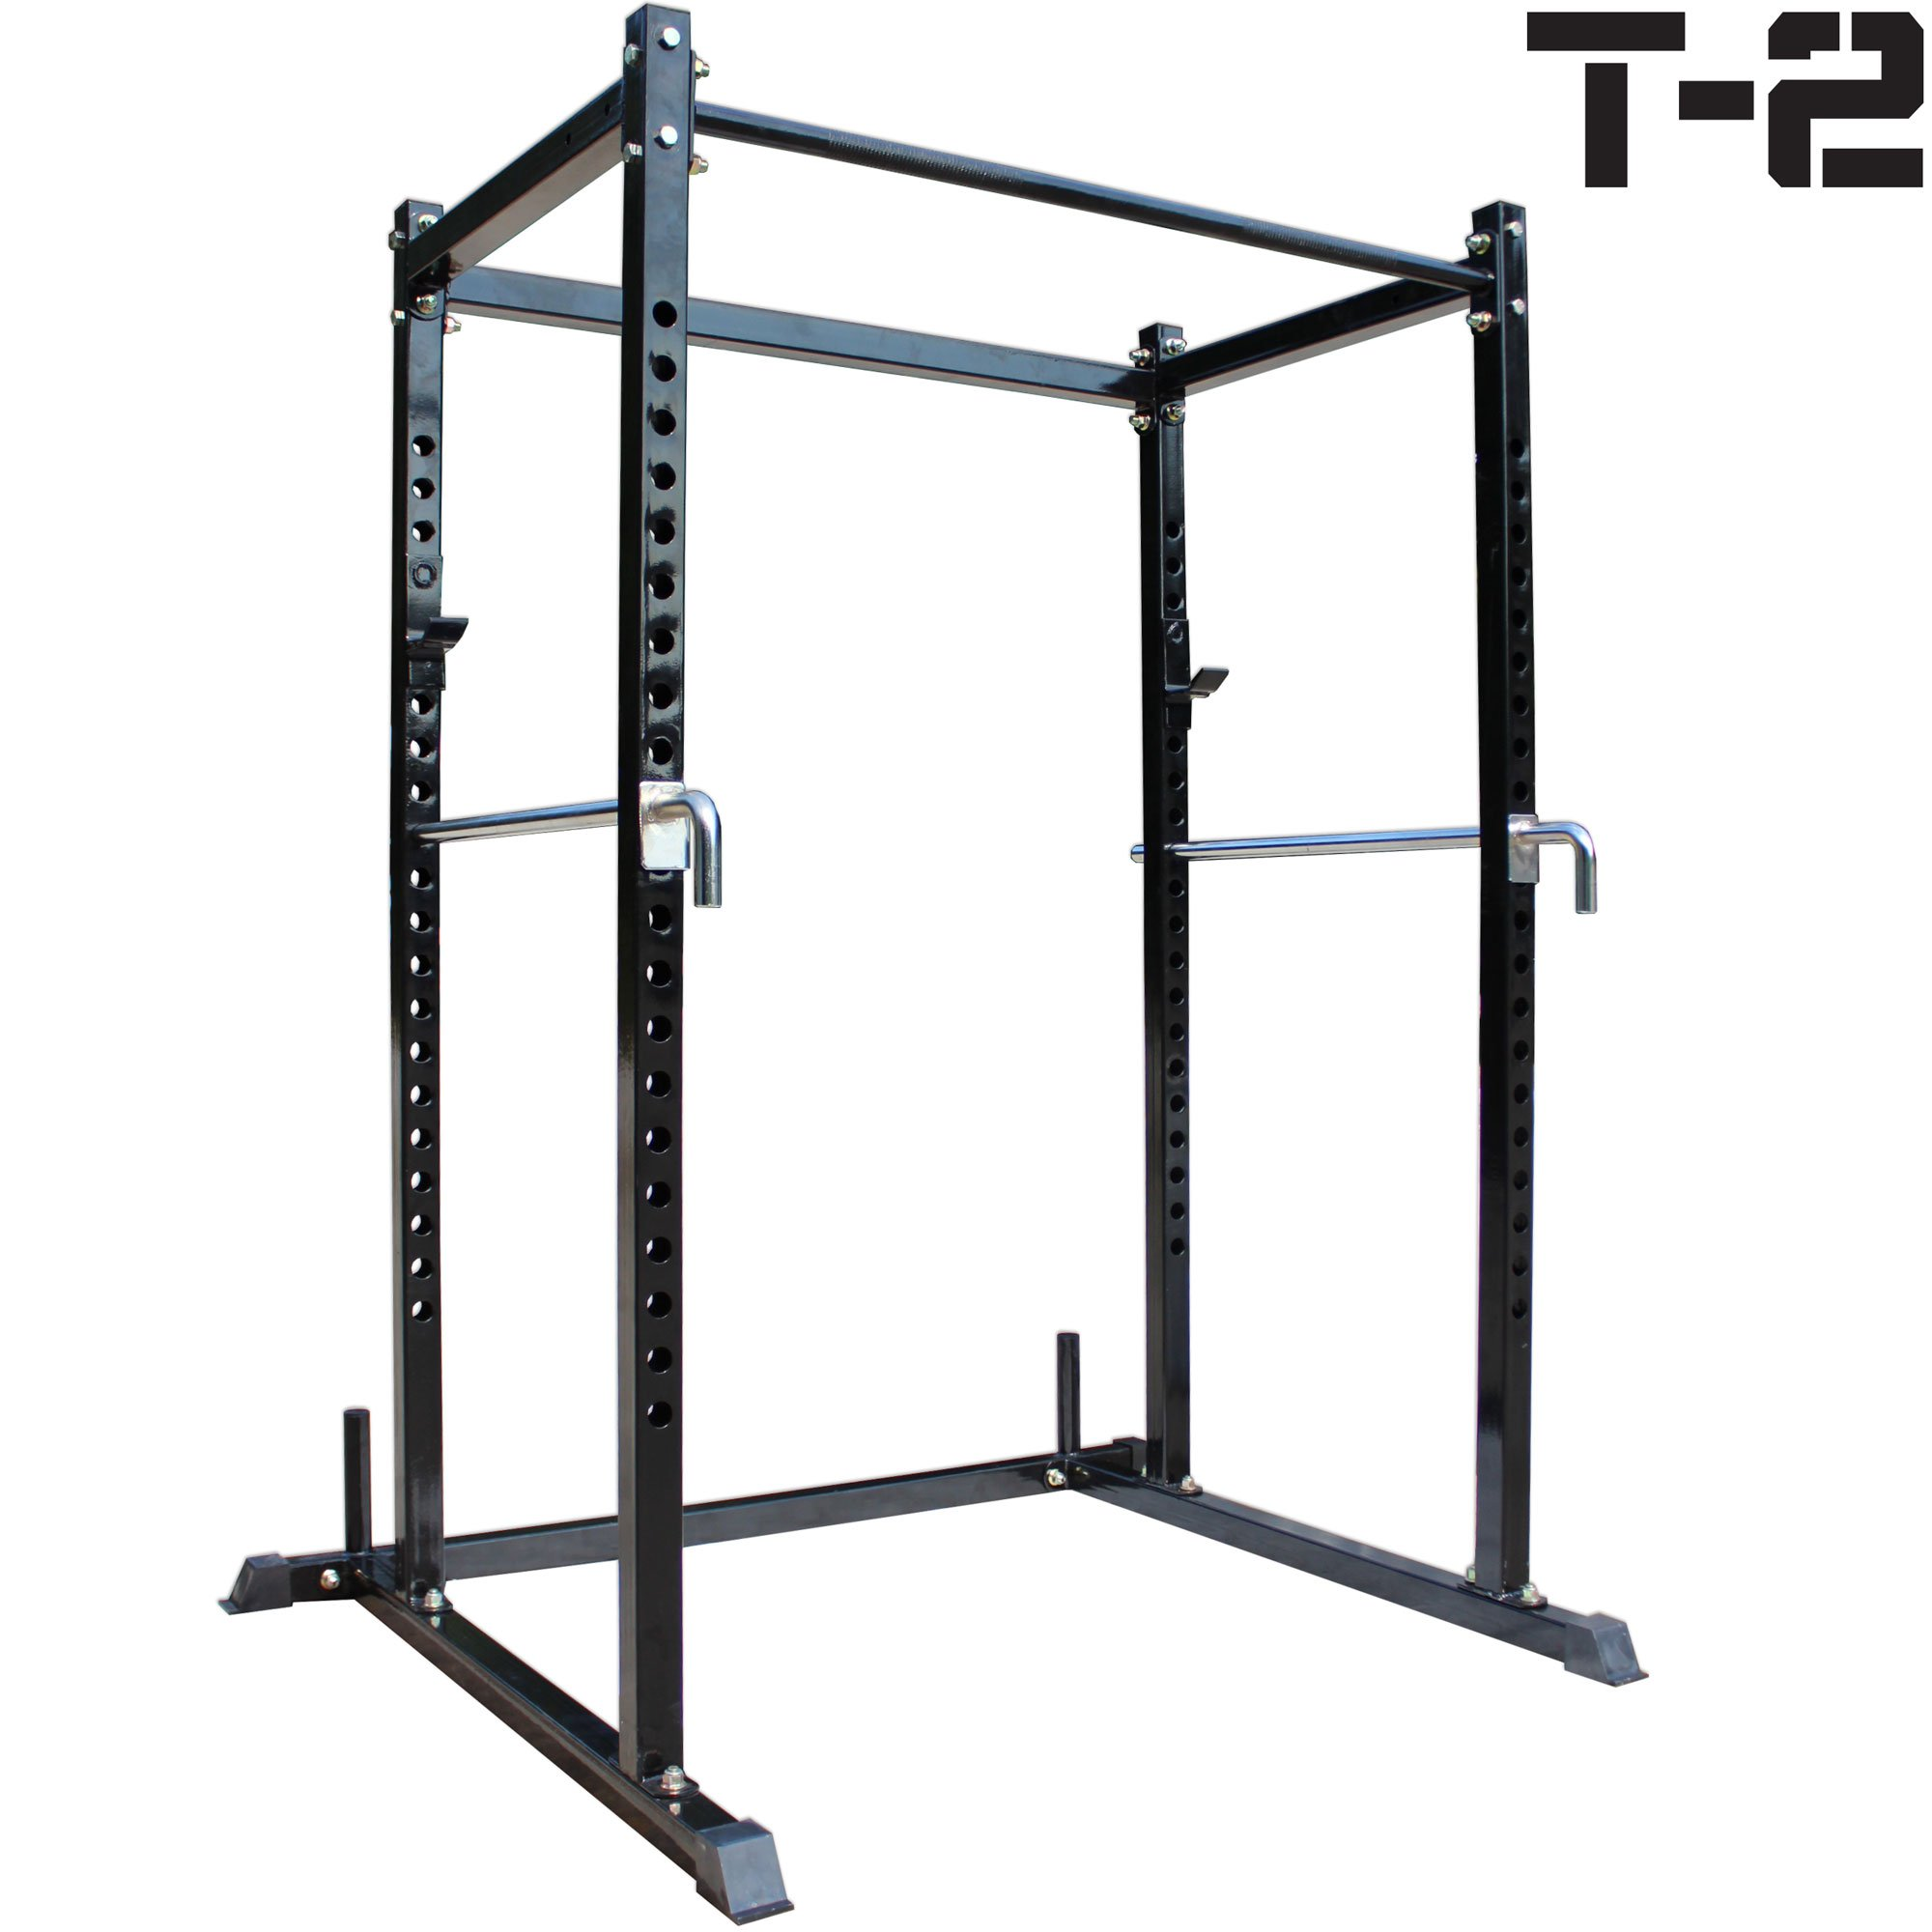 Titan T-2 Series Short Power Rack Squat Deadlift Cage Bench cross fit pull up by Titan Fitness